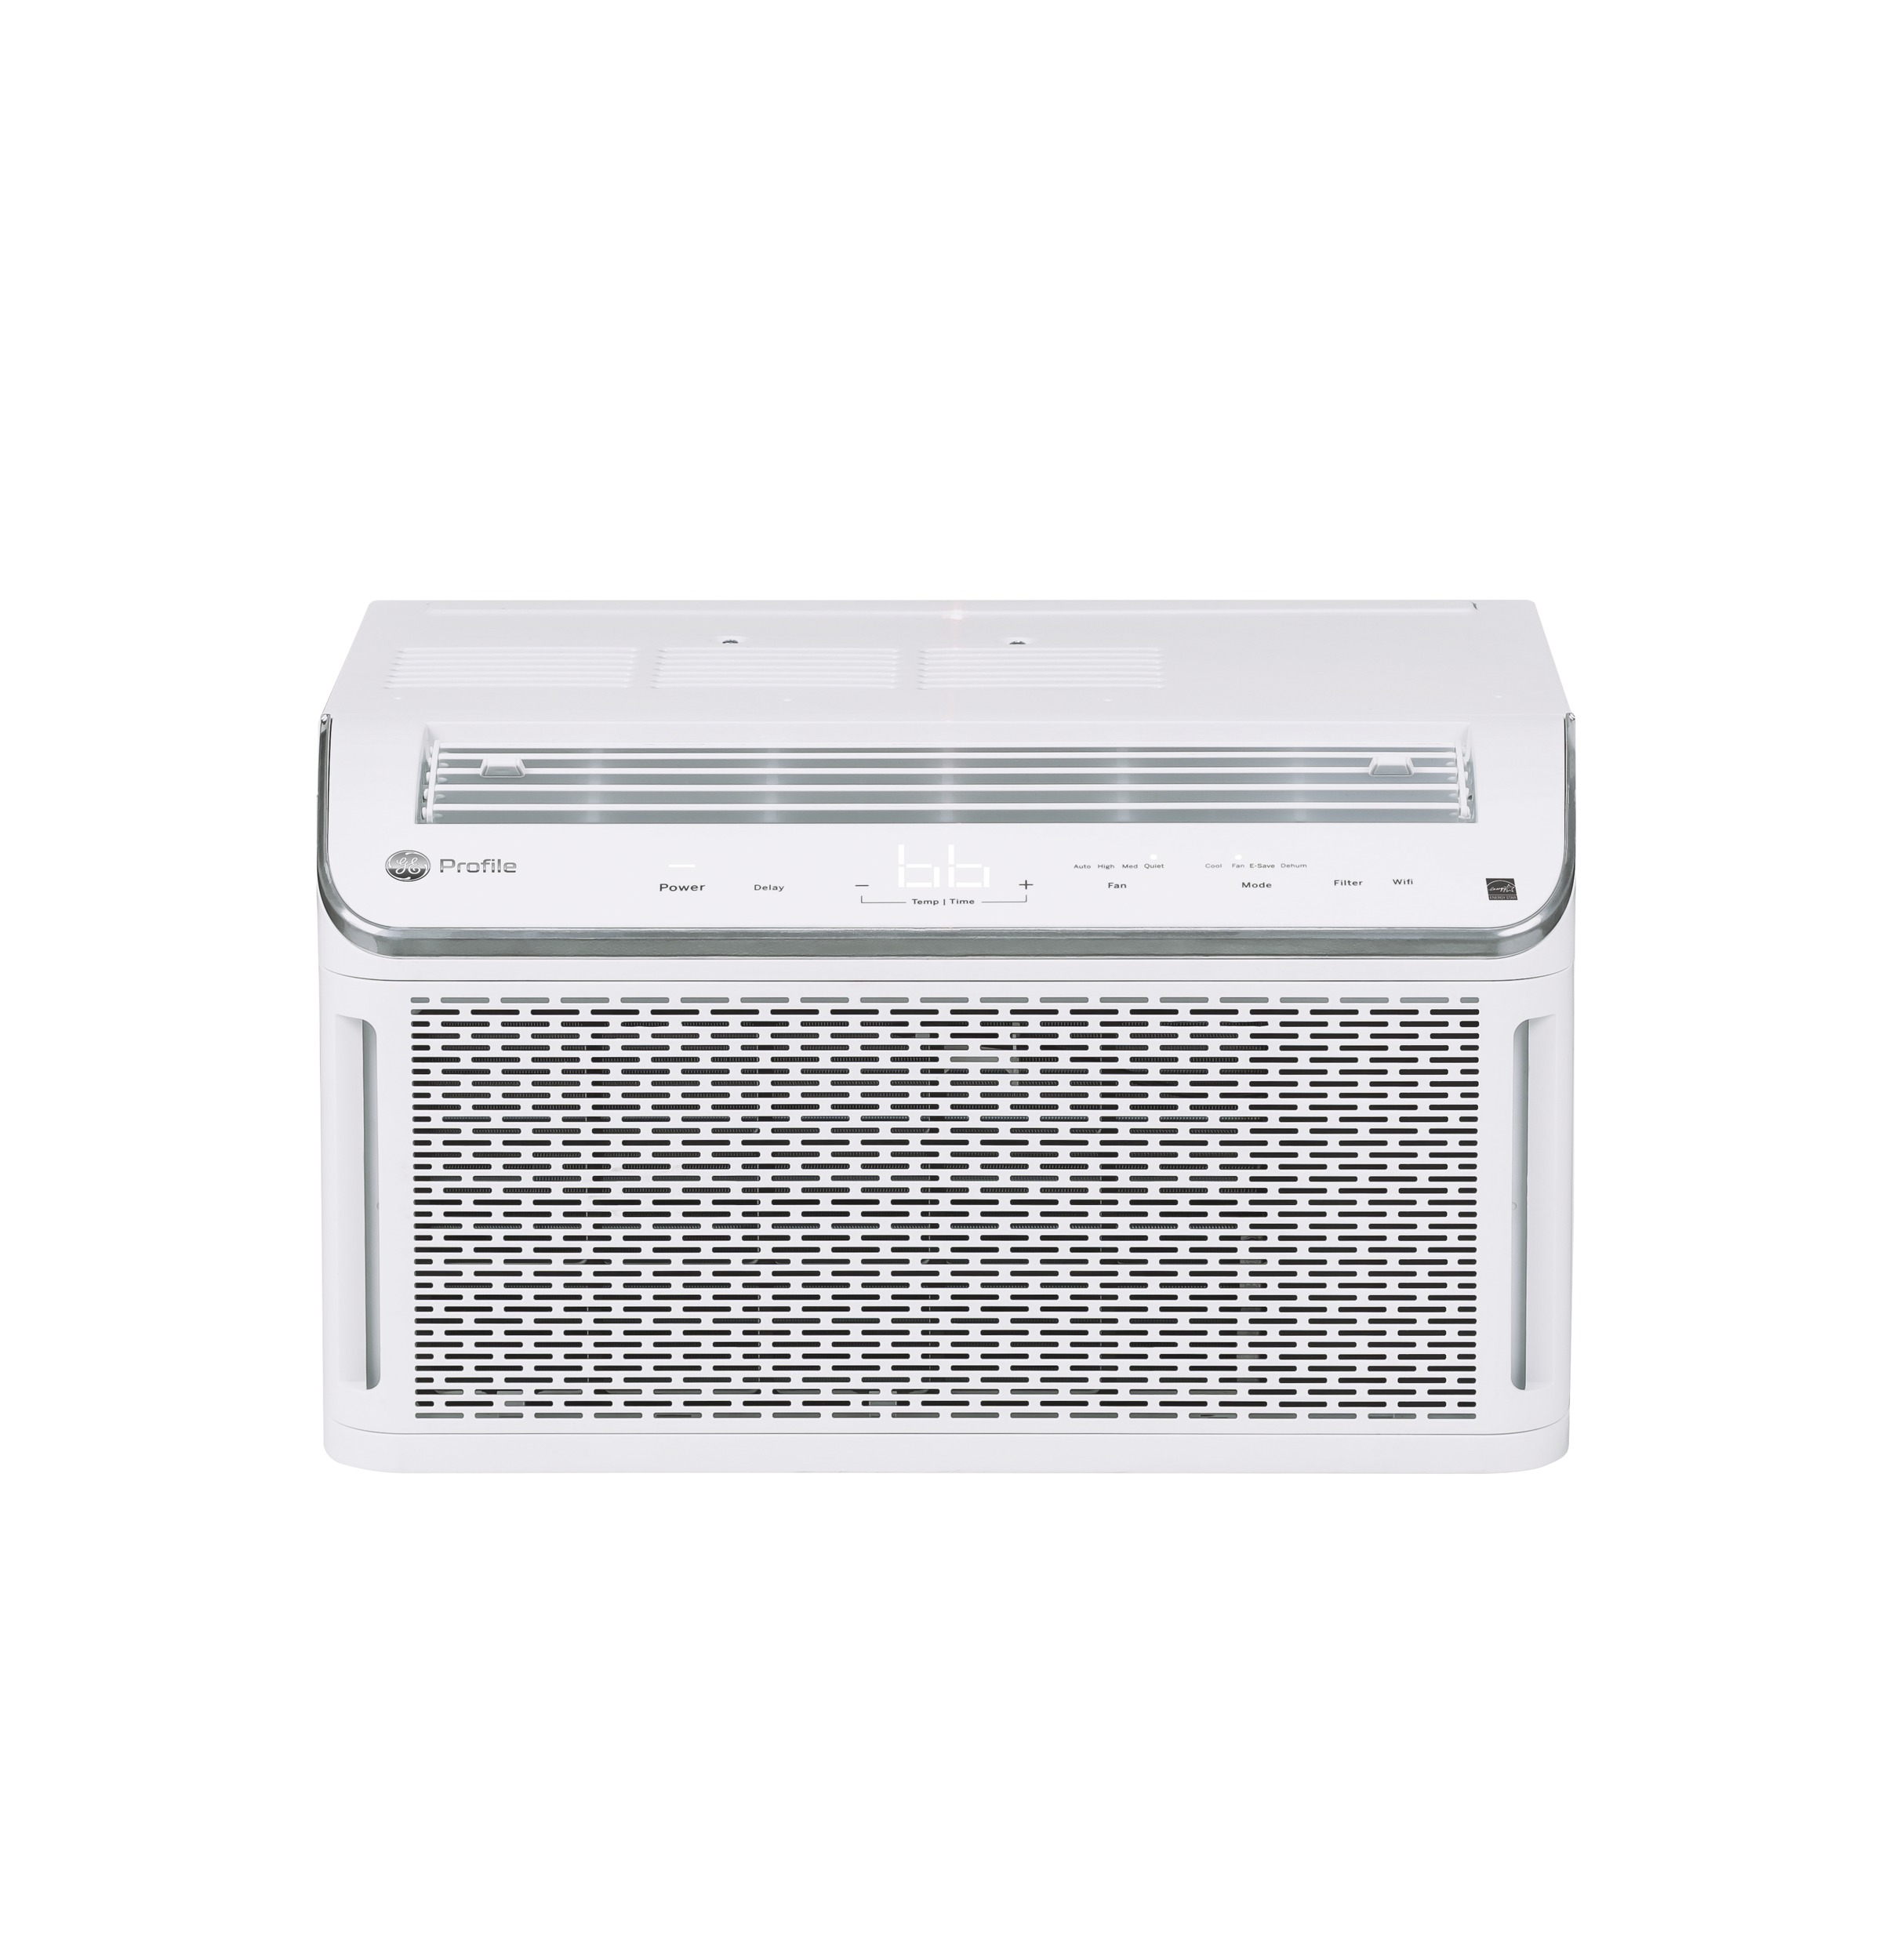 GE Profile GE® ENERGY STAR® 6,150 BTU Smart Ultra Quiet Window Air Conditioner for Small Rooms up to 250 sq. ft.